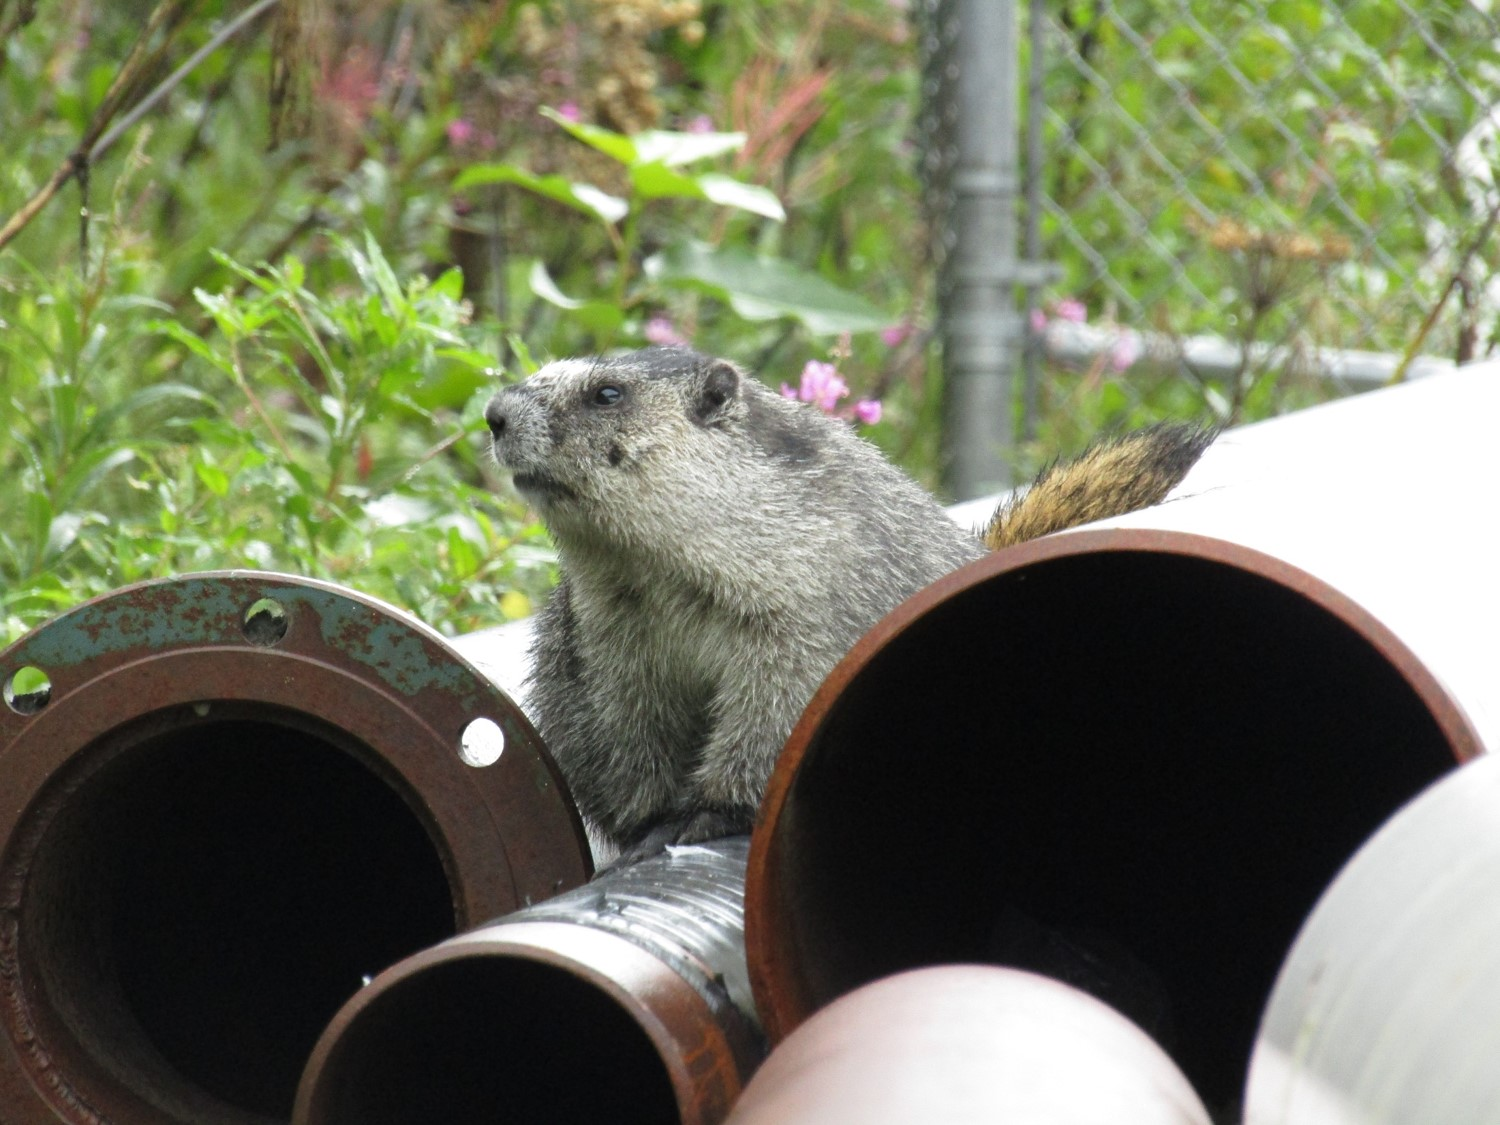 John Snow the marmot using some pipes as a hideout.